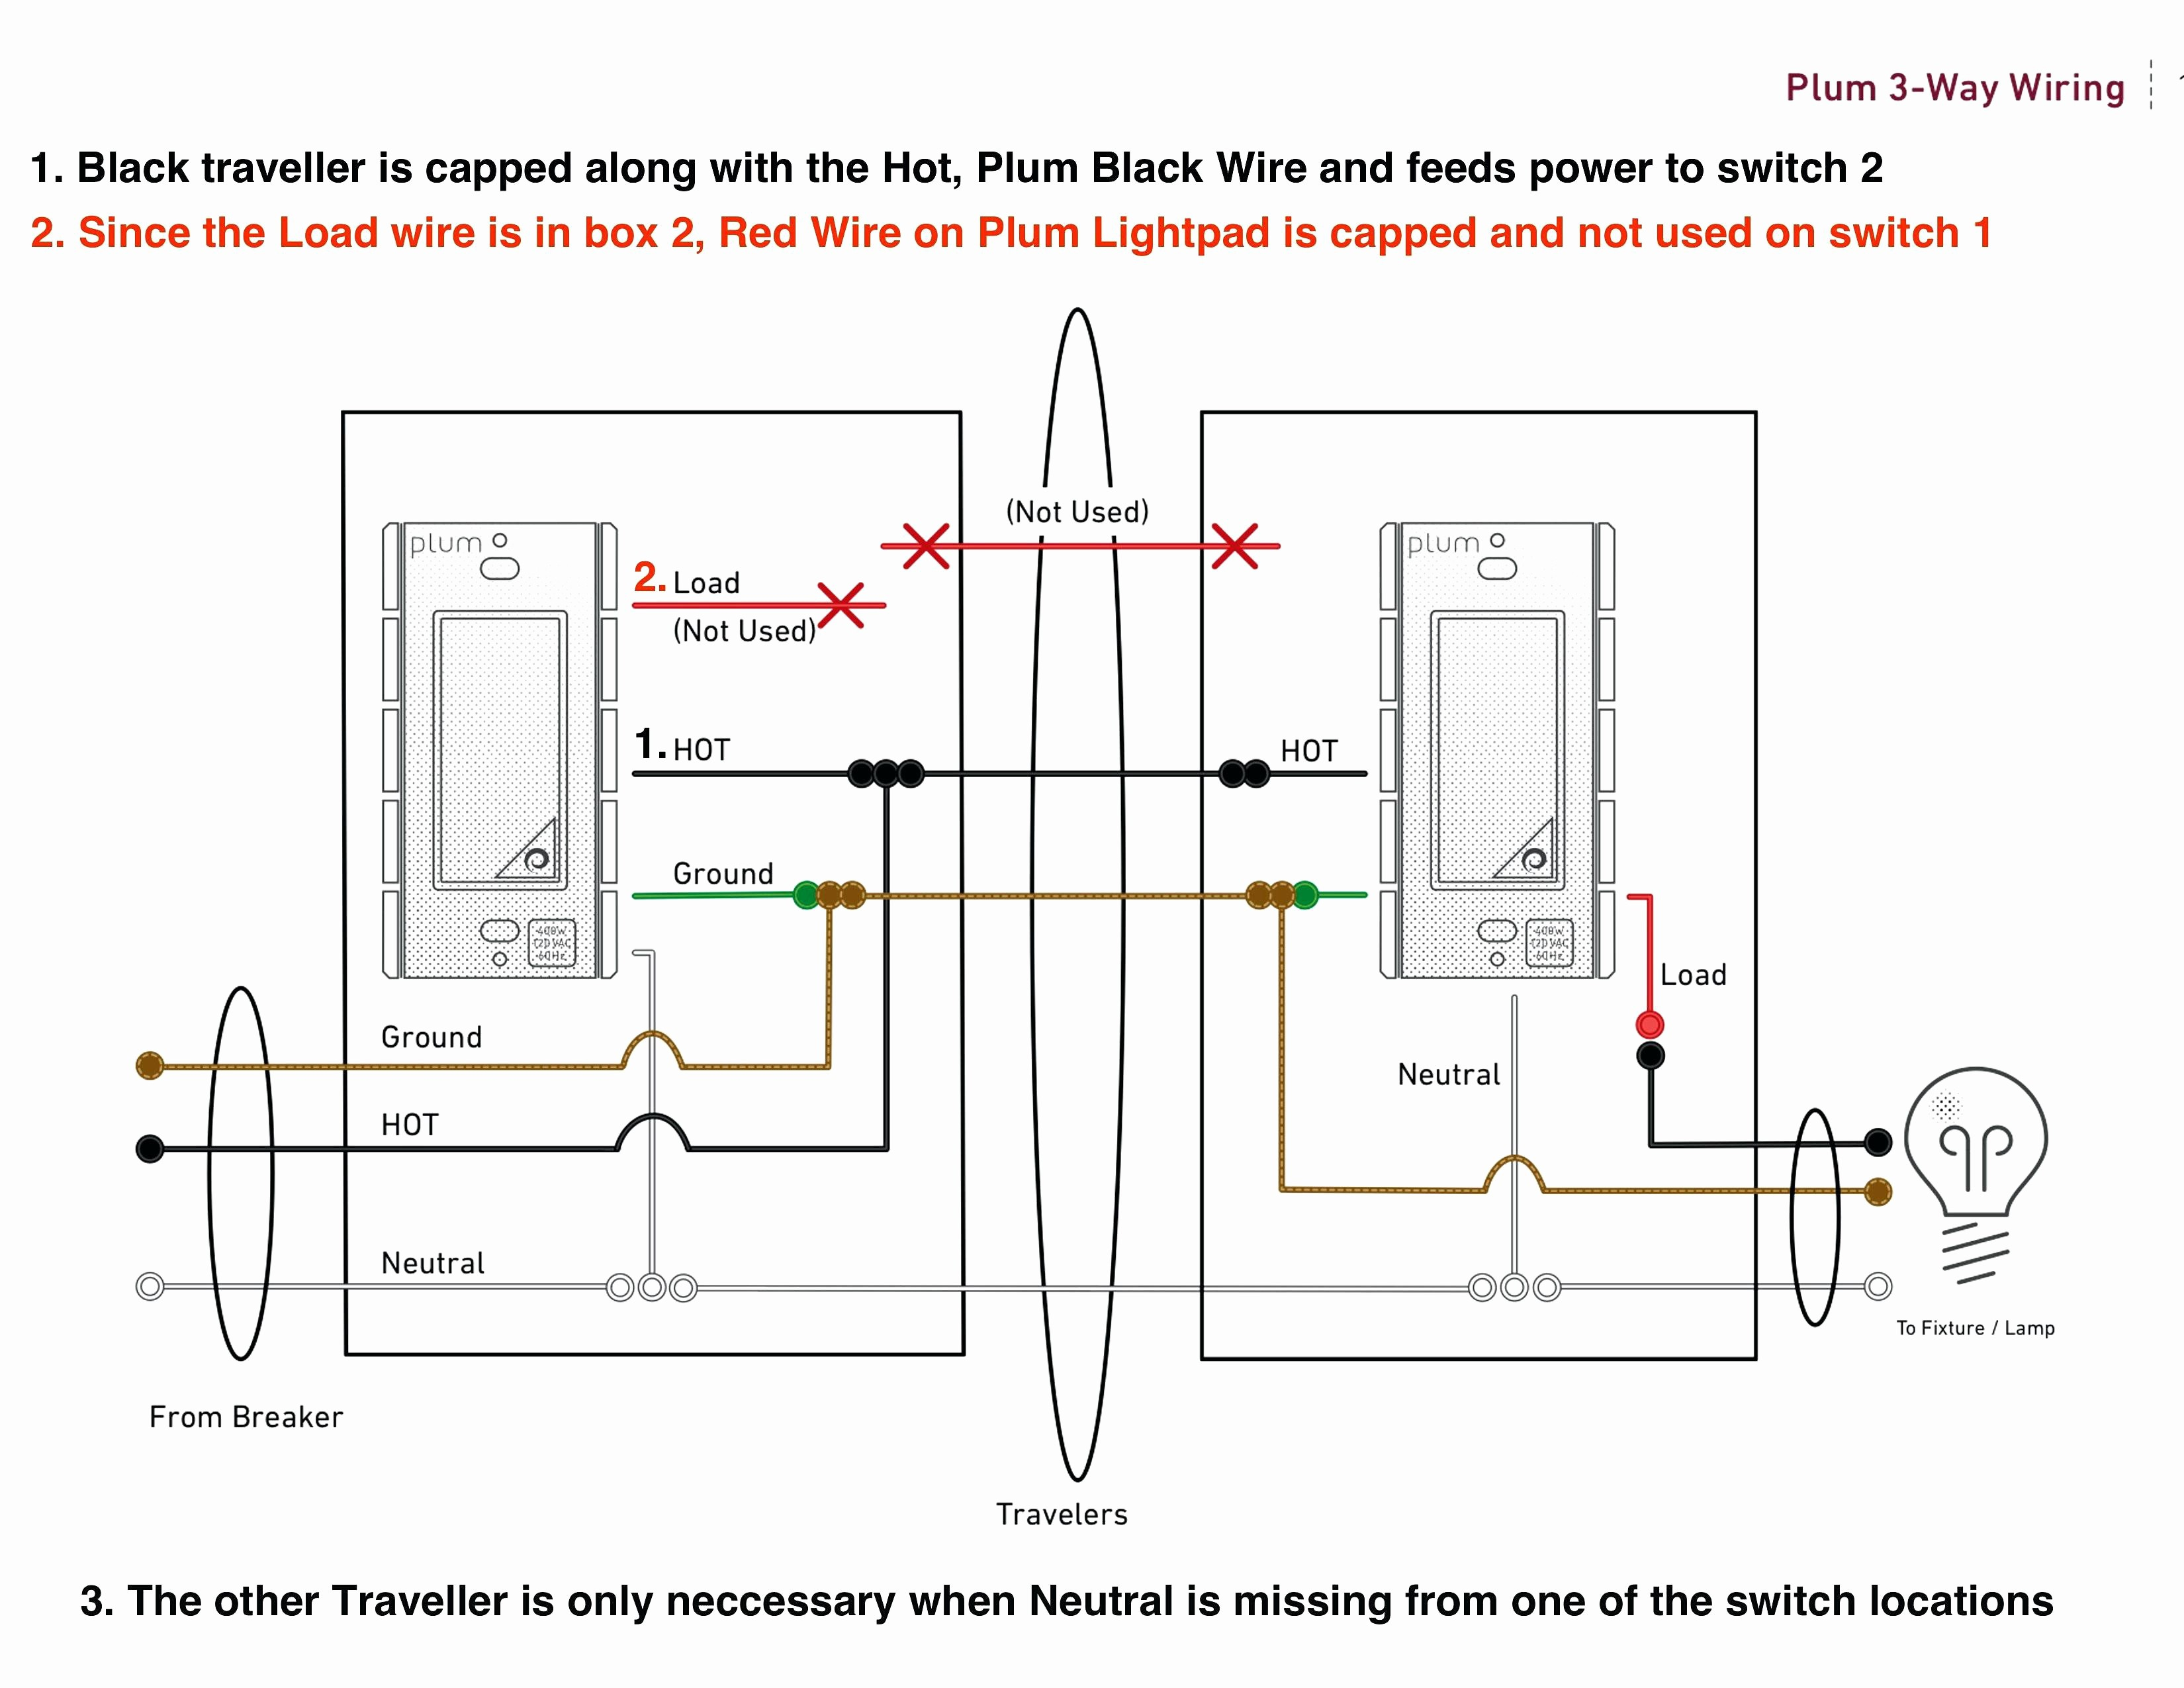 6 Volt Positive Ground Wiring Diagram | Electrick Wiring Diagram @co - 6 Volt Positive Ground Wiring Diagram